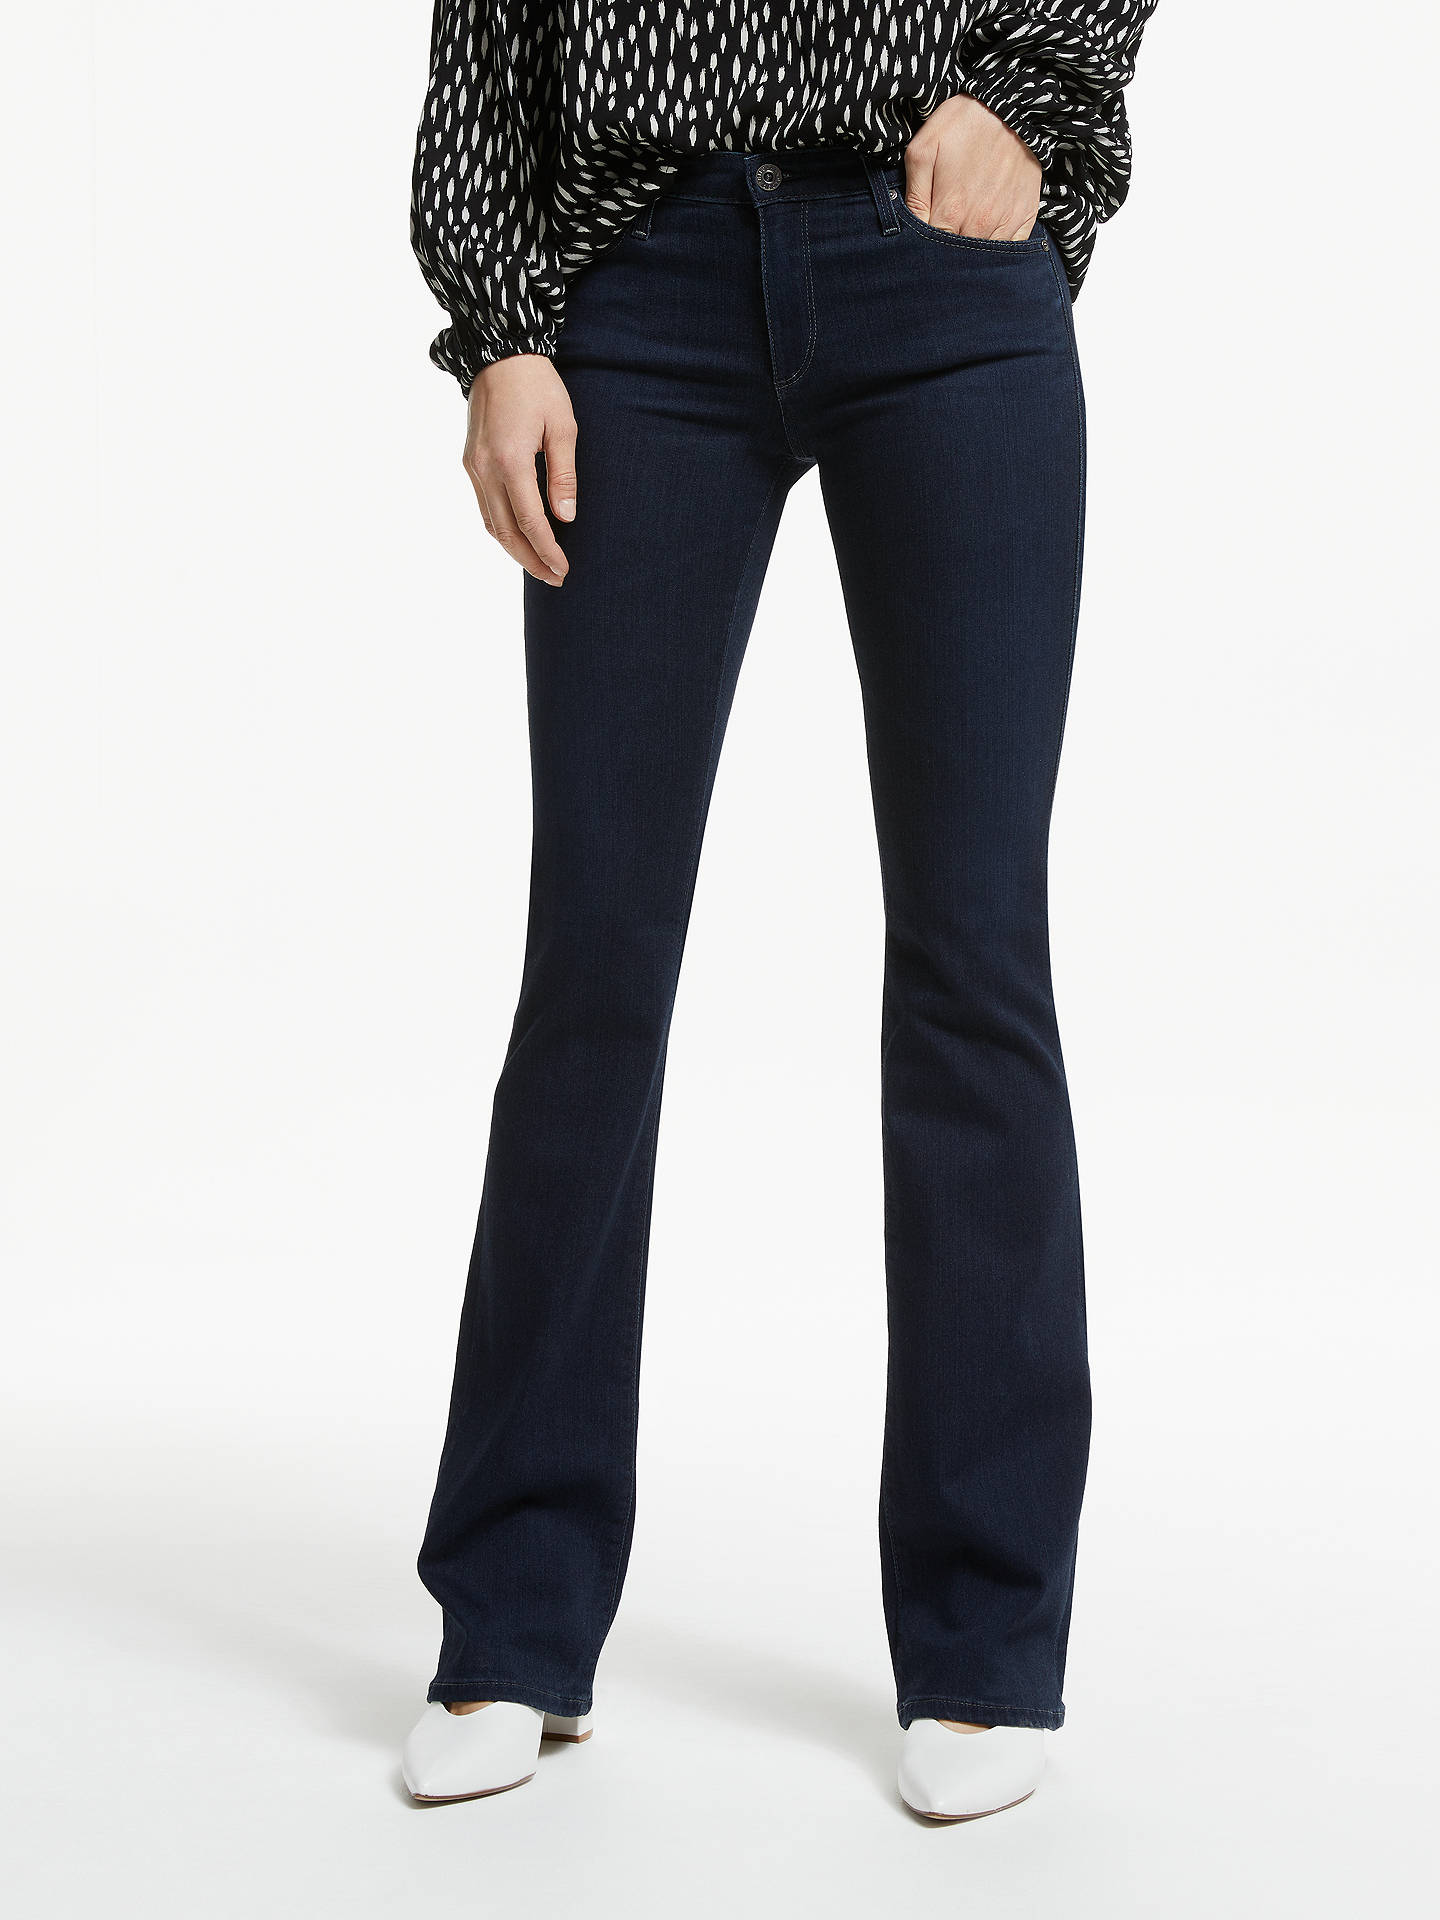 f1d4c1ef402 Buy AG The Angel Bootcut Jean, Audacious, 24 Online at johnlewis.com ...